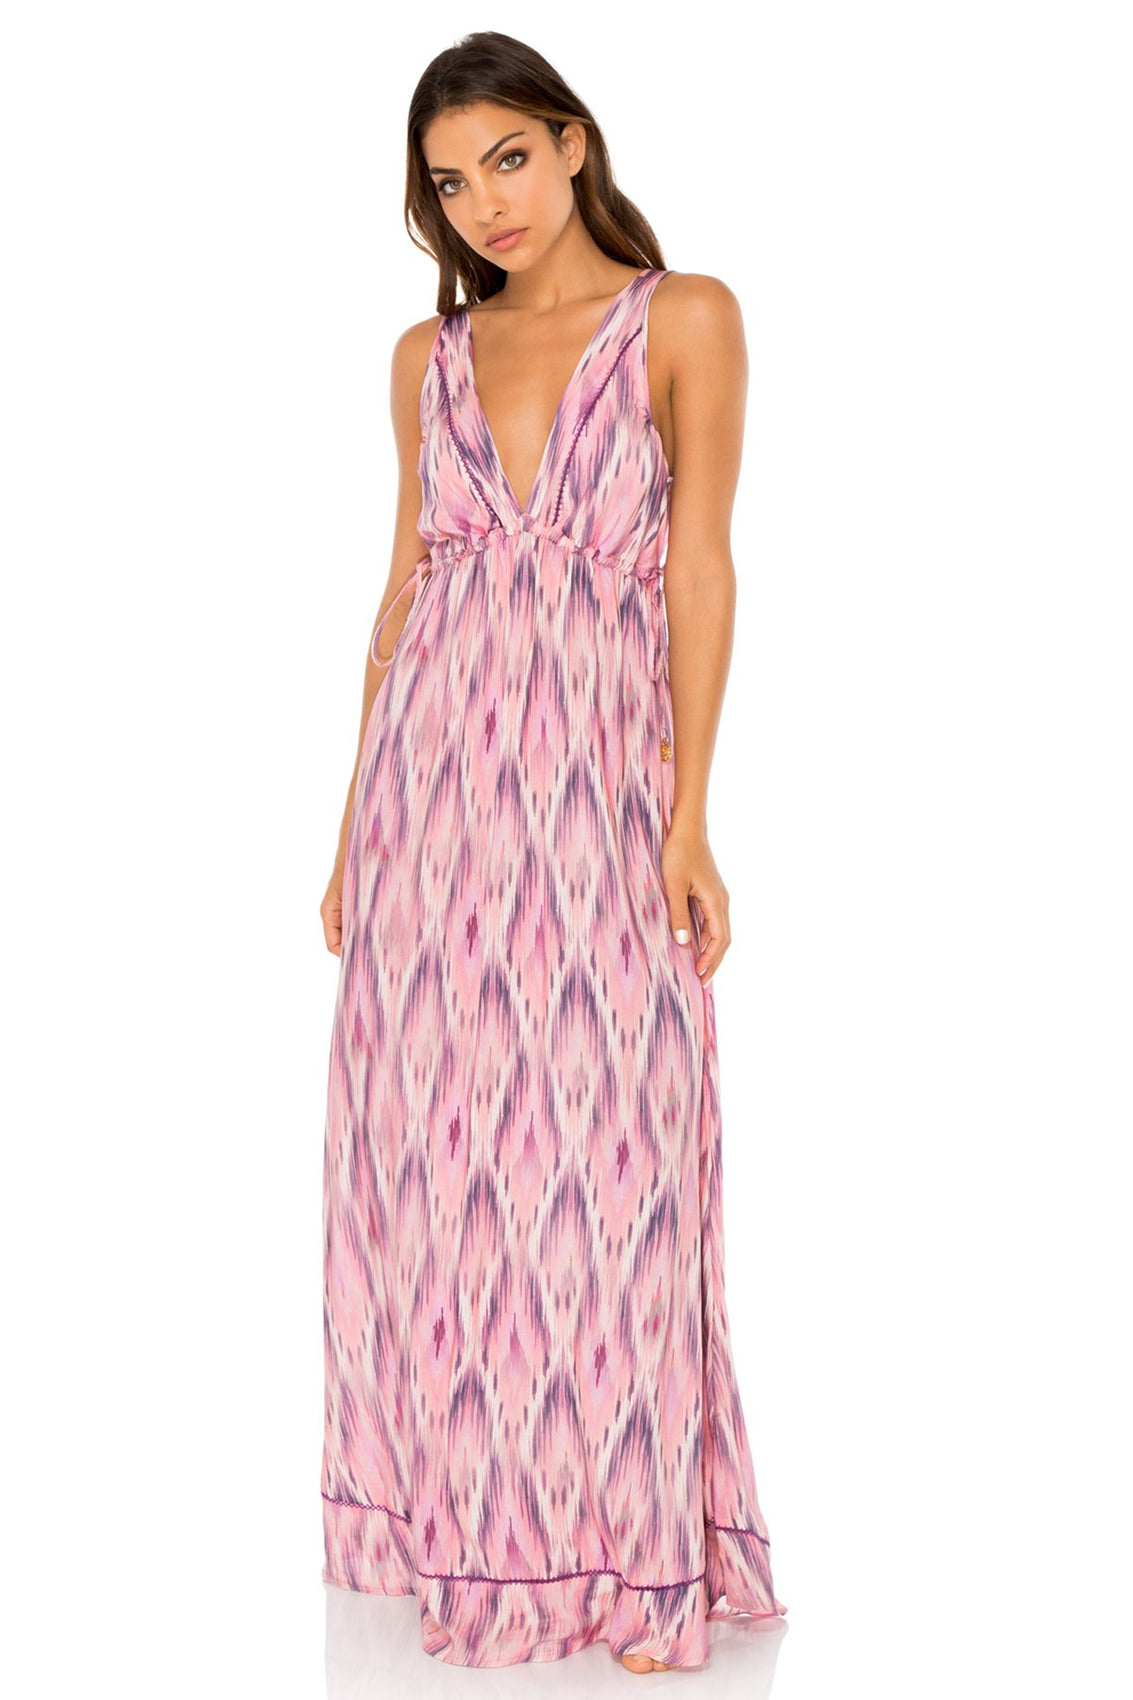 CADIZ - Boho Maxi Dress • Multicolor